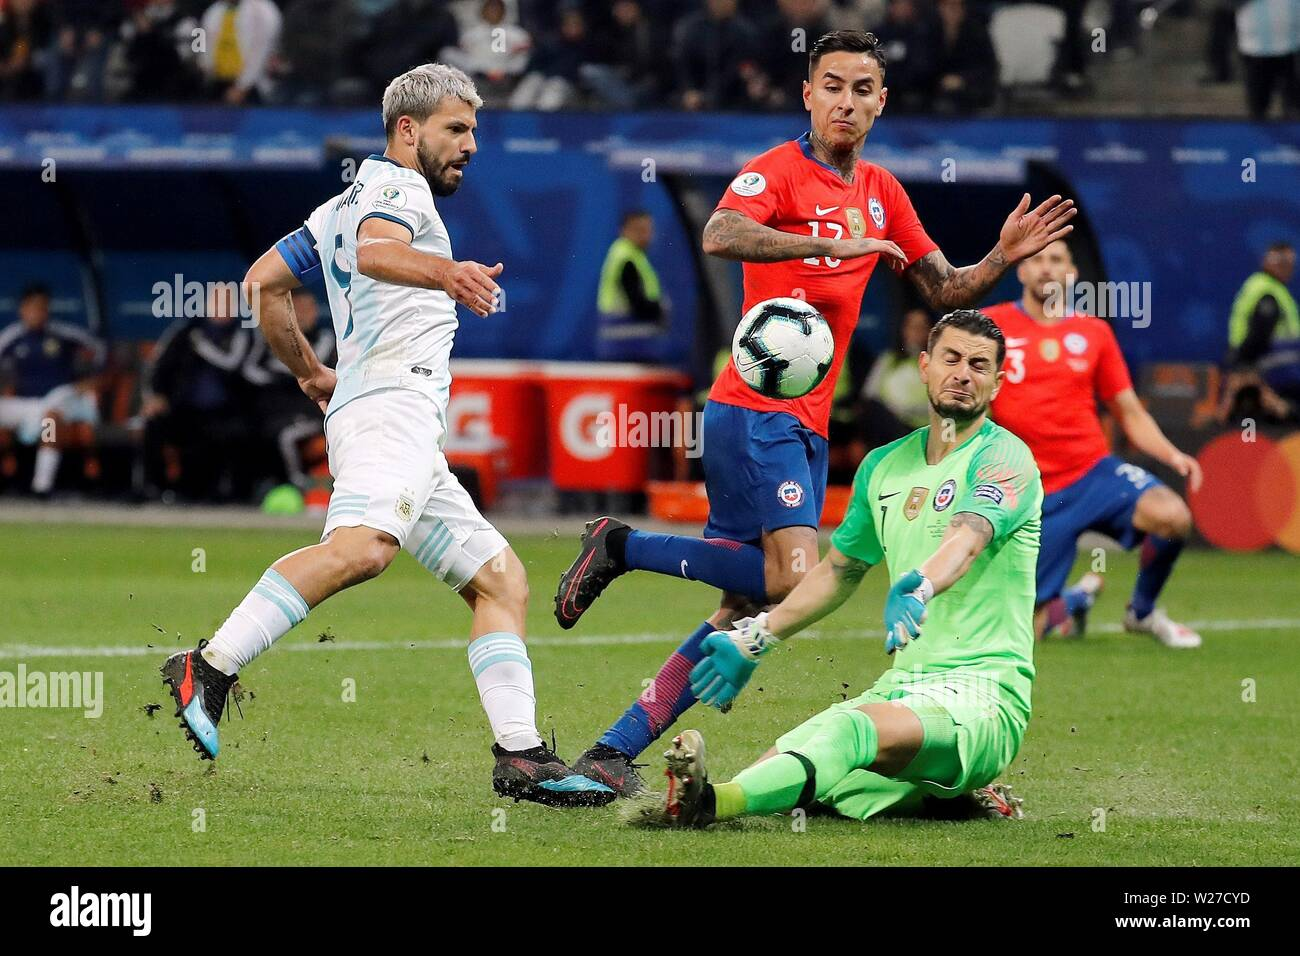 Sao Paulo, Brazil. 06th July, 2019. Chile's golakeeper Gabriel Arias (R) vies for the ball with Argentina's Kun Aguero during the Copa America 2019 3rd place soccer match between Argentina and Chile, at Arena Corinthians Stadium in Sao Paulo, Brazil, 6 July 2019. Credit: Paulo Whitaker/EFE/Alamy Live News - Stock Image